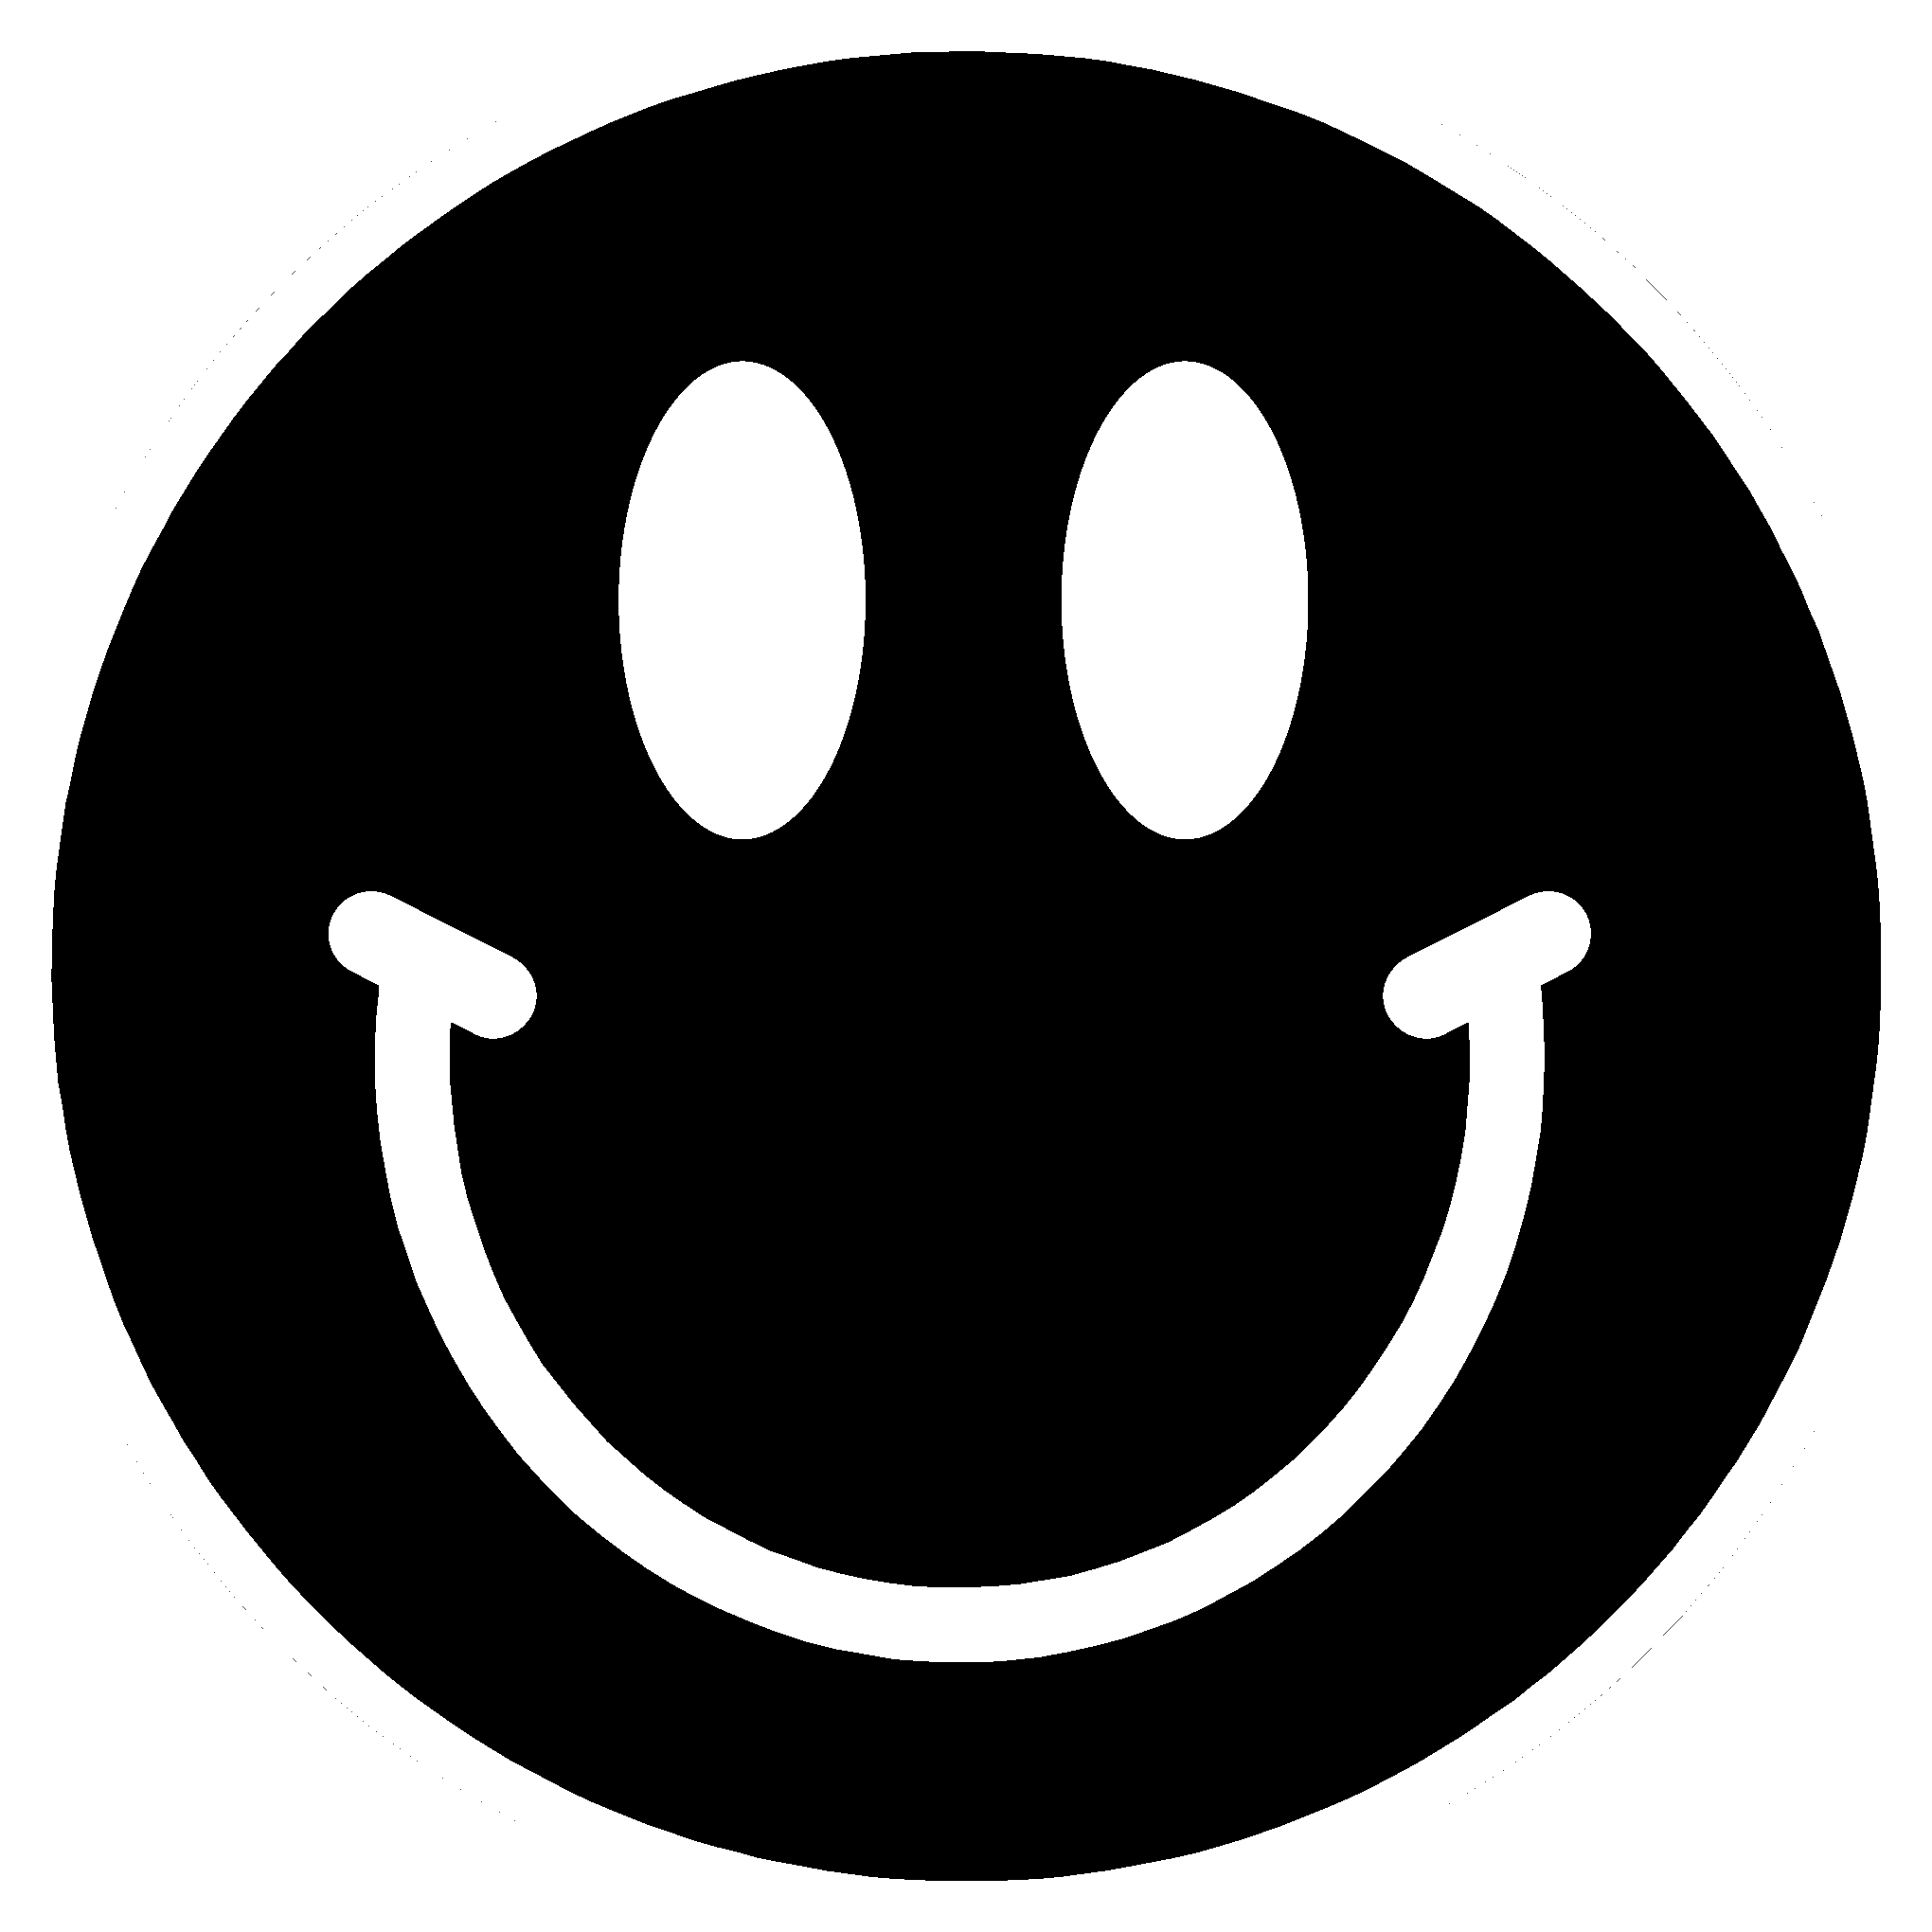 Smiley face  black and white smiley face clipart black and white free 6